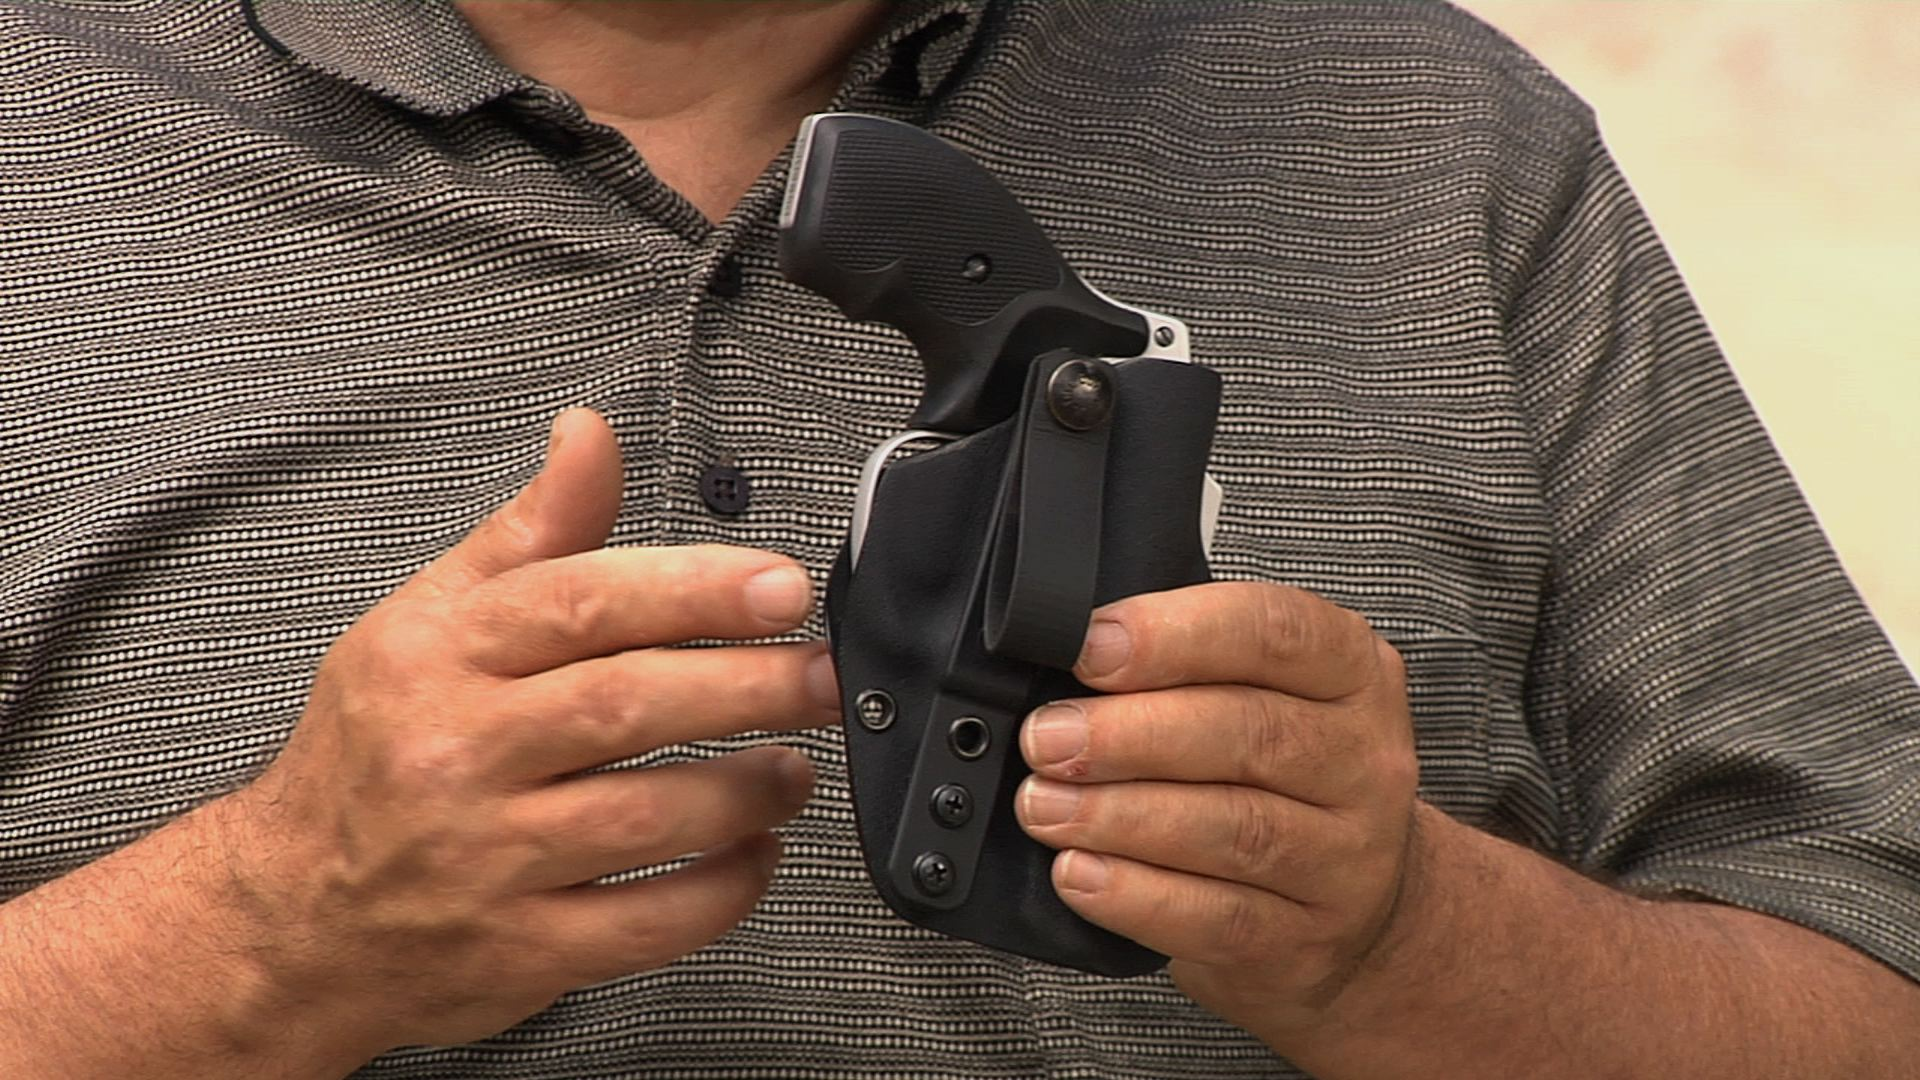 Self-Defense Products: Innovative Appendix Carry Holster